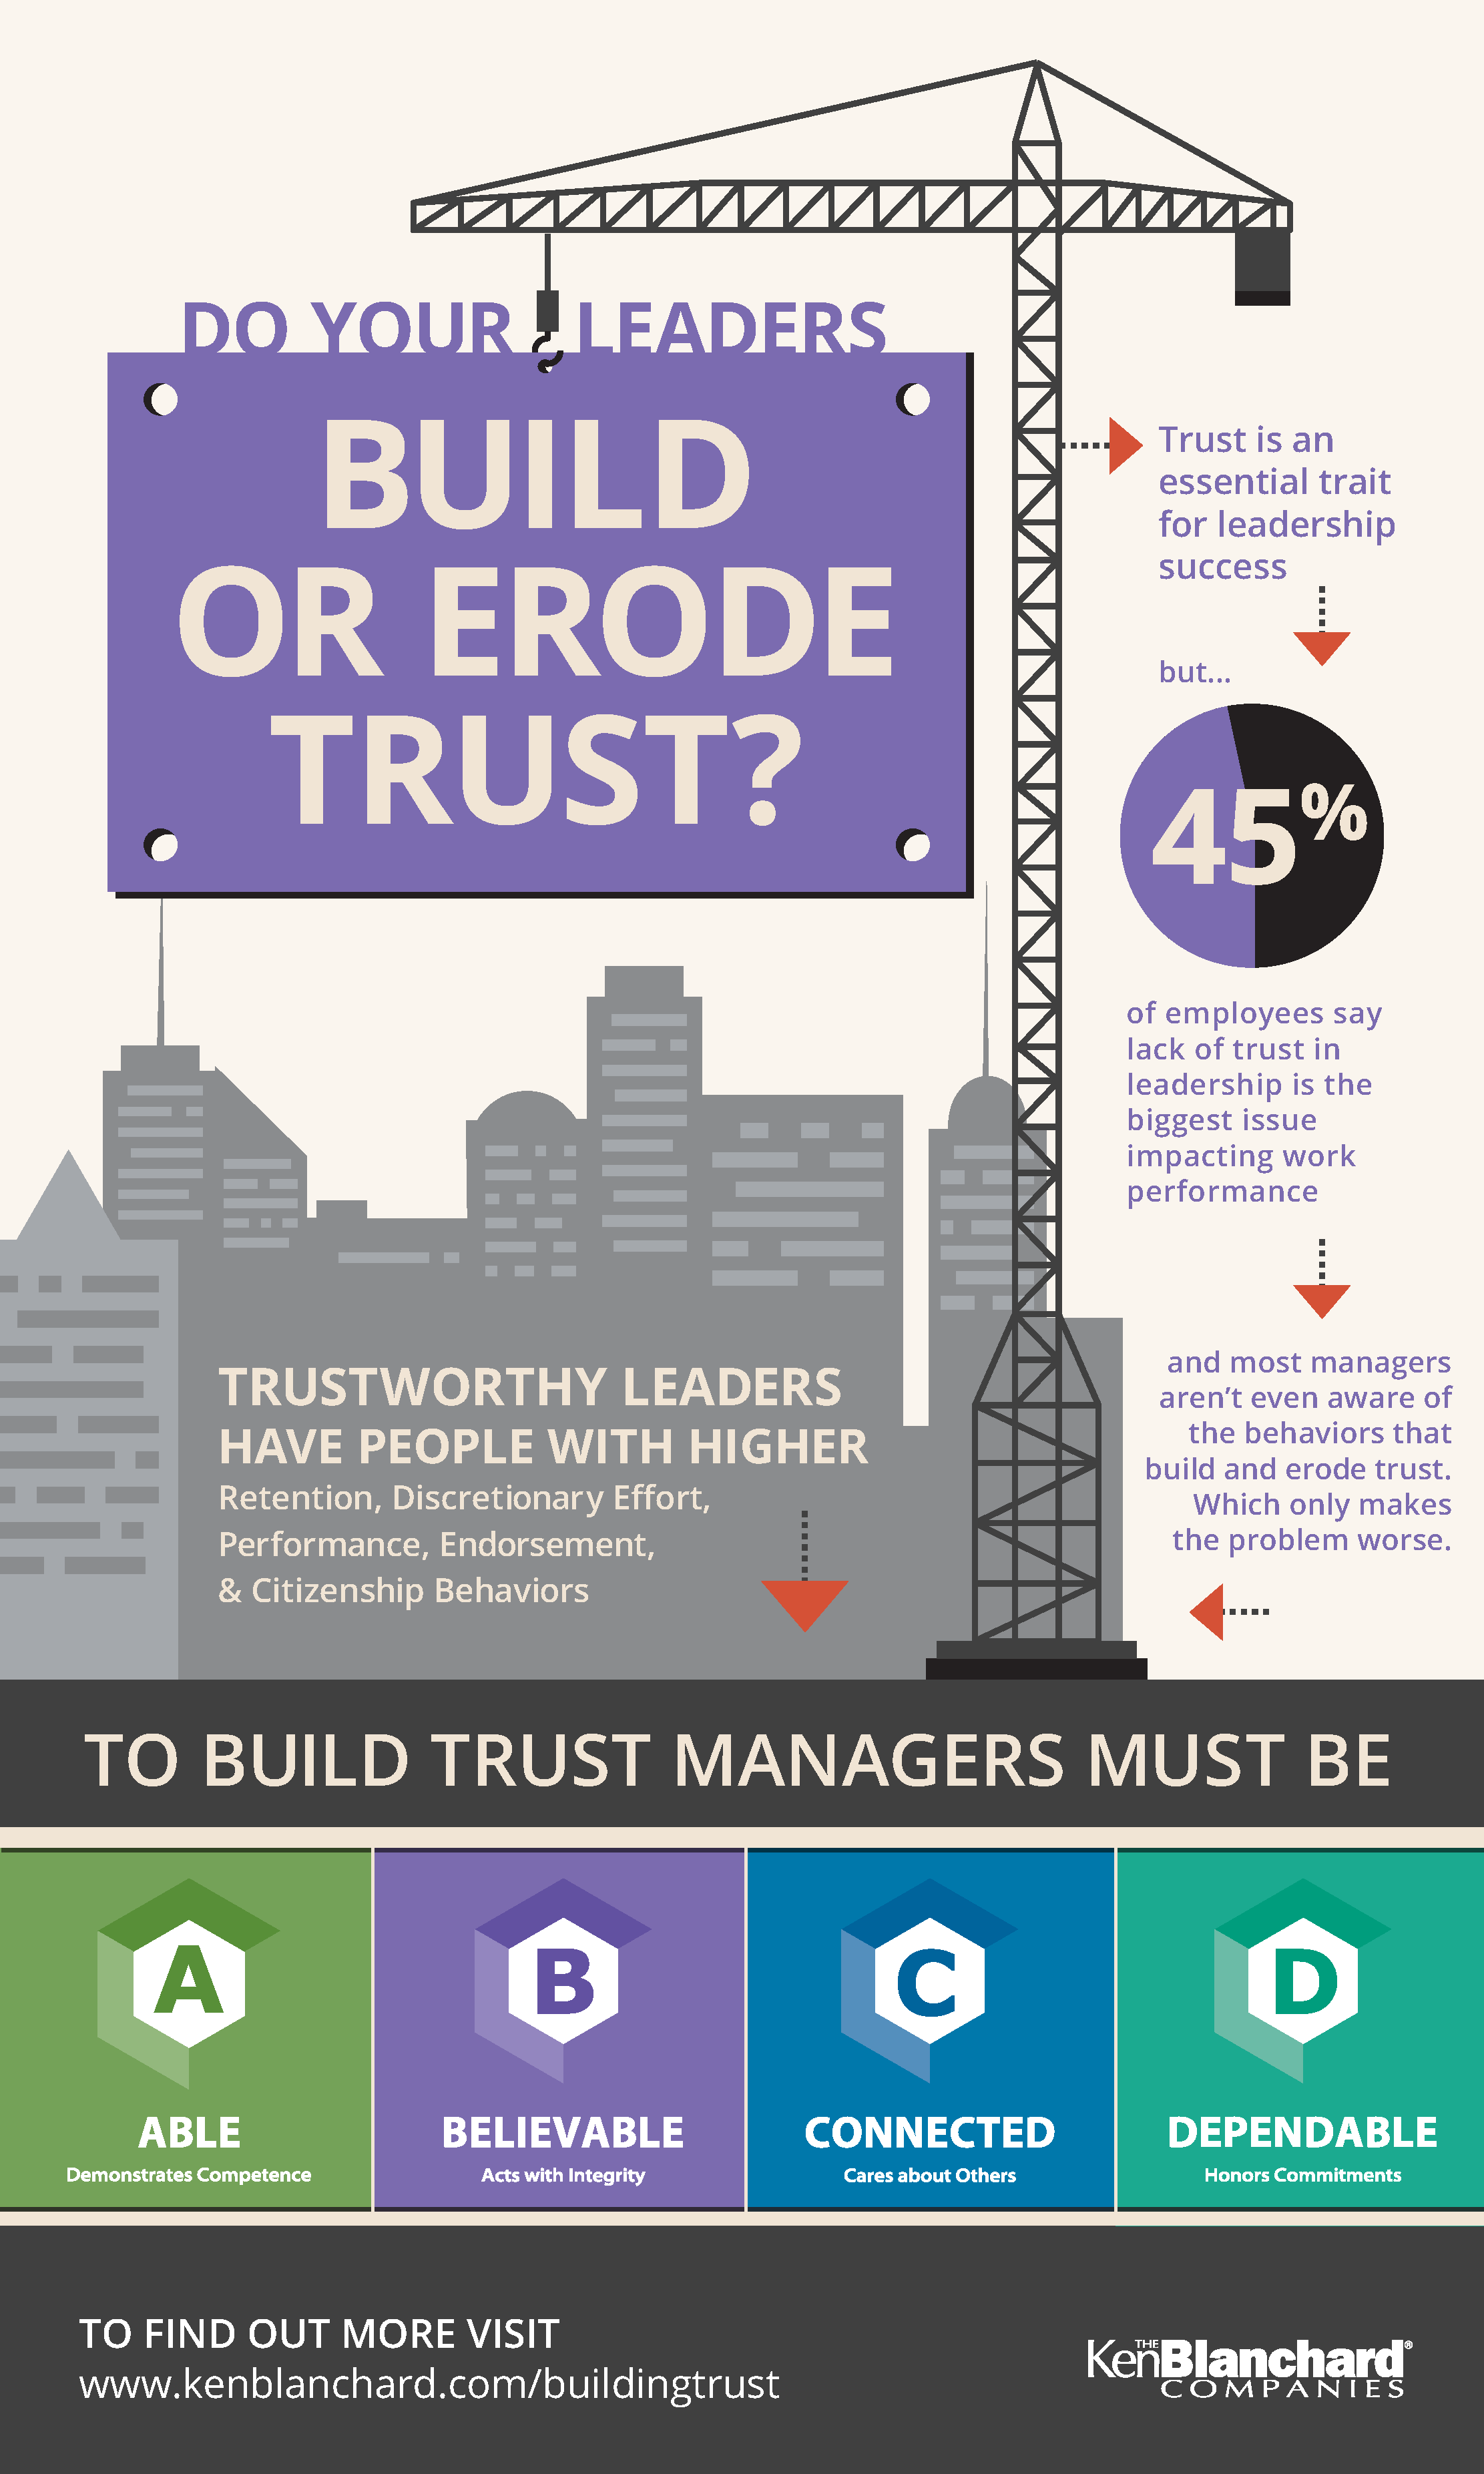 Httpsleadingwithtrust201808126 ways leaders bully people trust infographic do your leaders build or erode trustg solutioingenieria Images